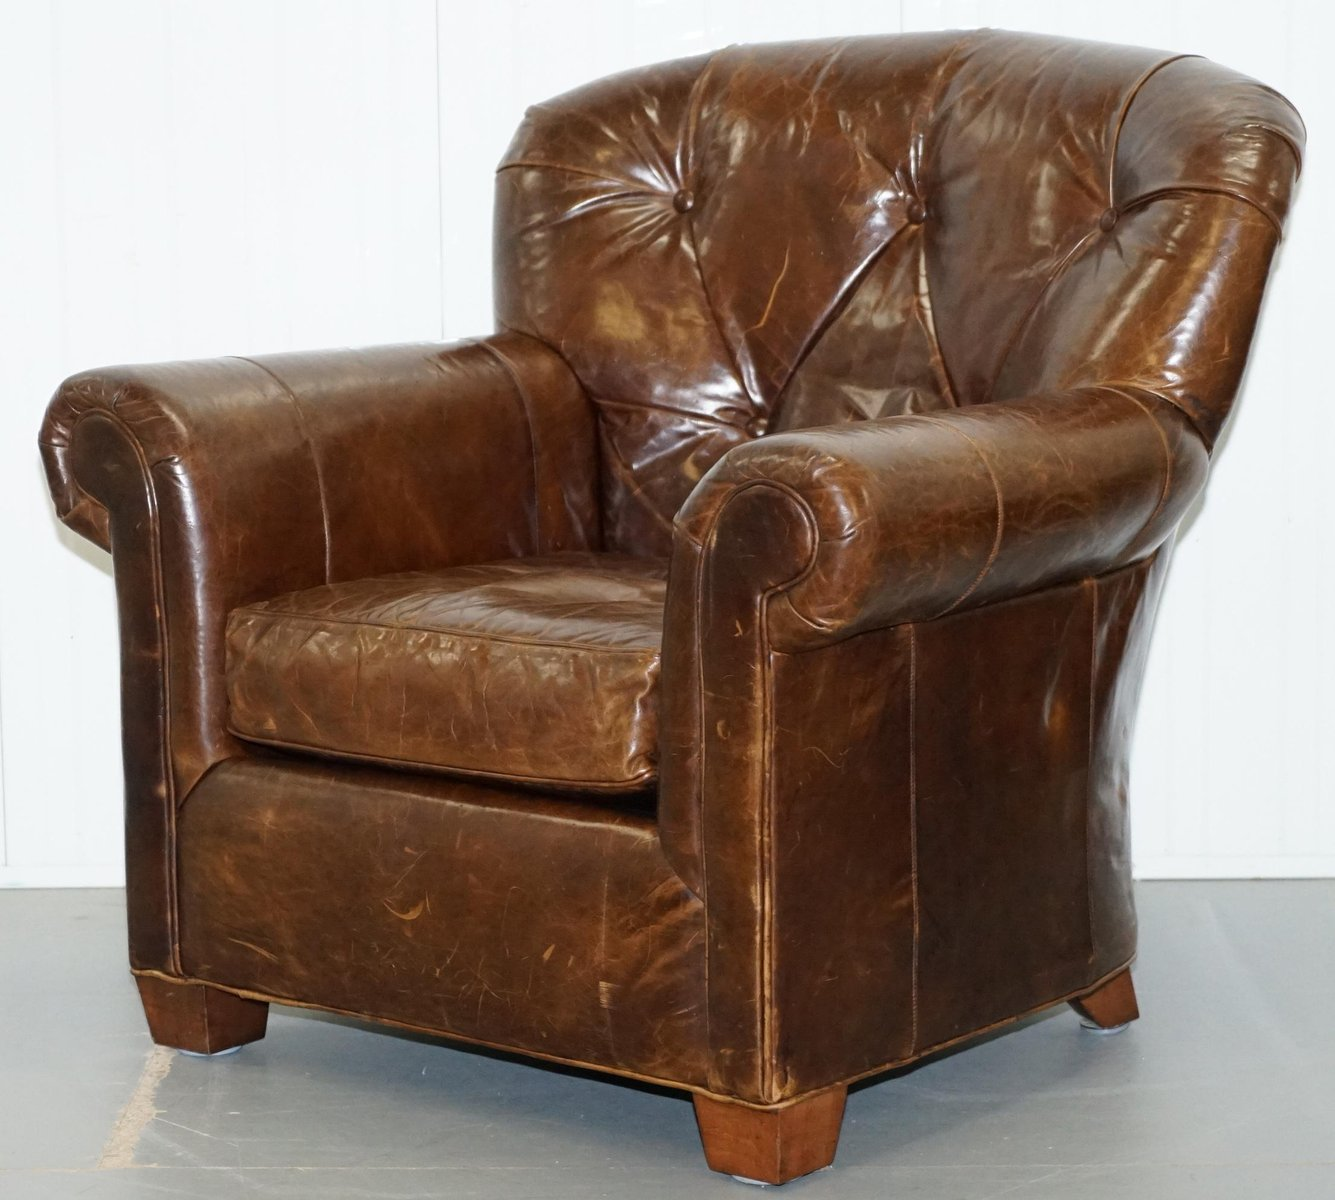 Fabulous Large Brown Leather Club Chair From Ralph Lauren 1980S Ibusinesslaw Wood Chair Design Ideas Ibusinesslaworg